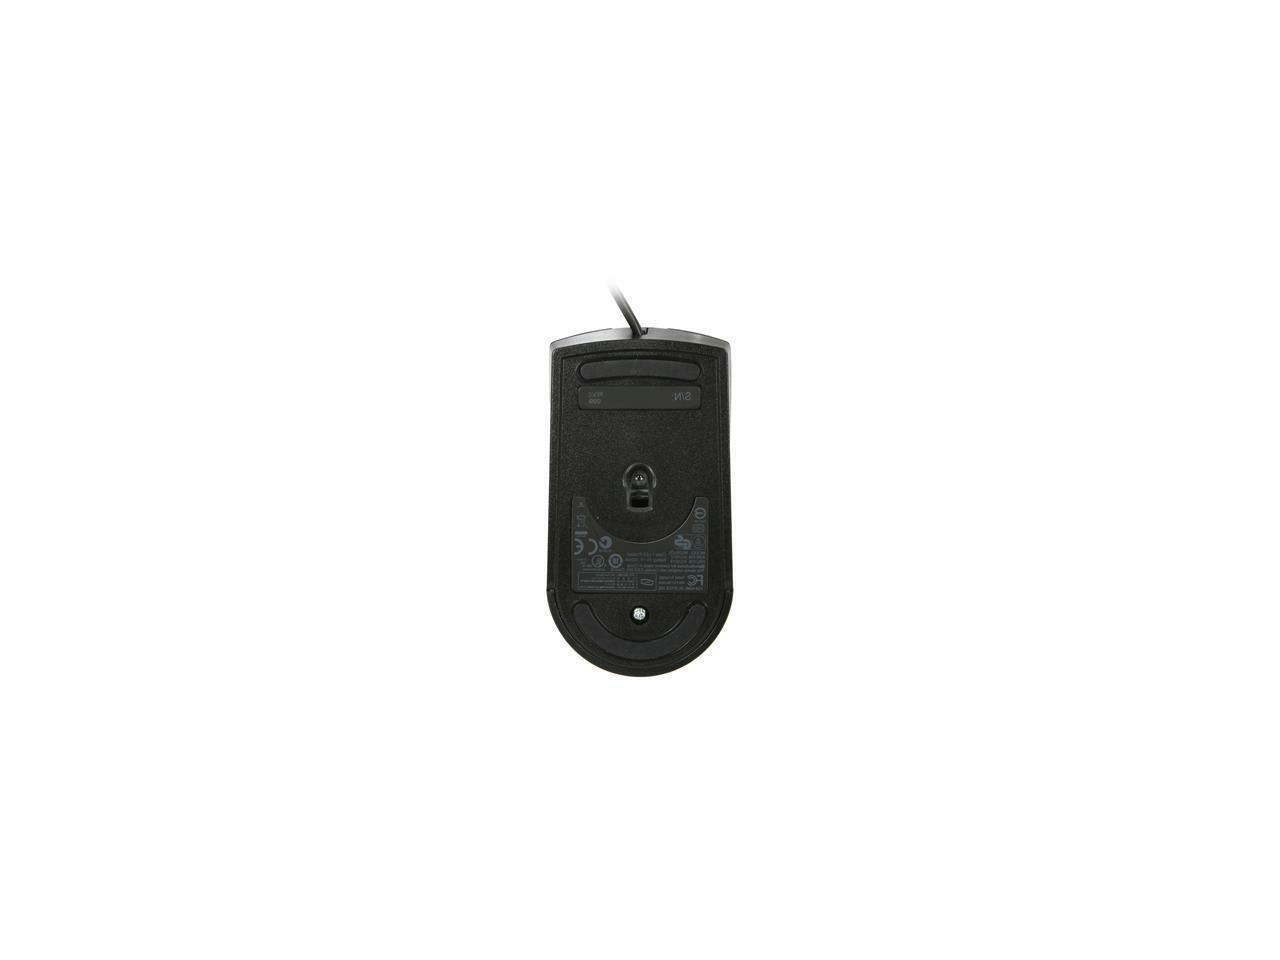 Lenovo USB Wired Mouse Buttons Wheel 06P4069